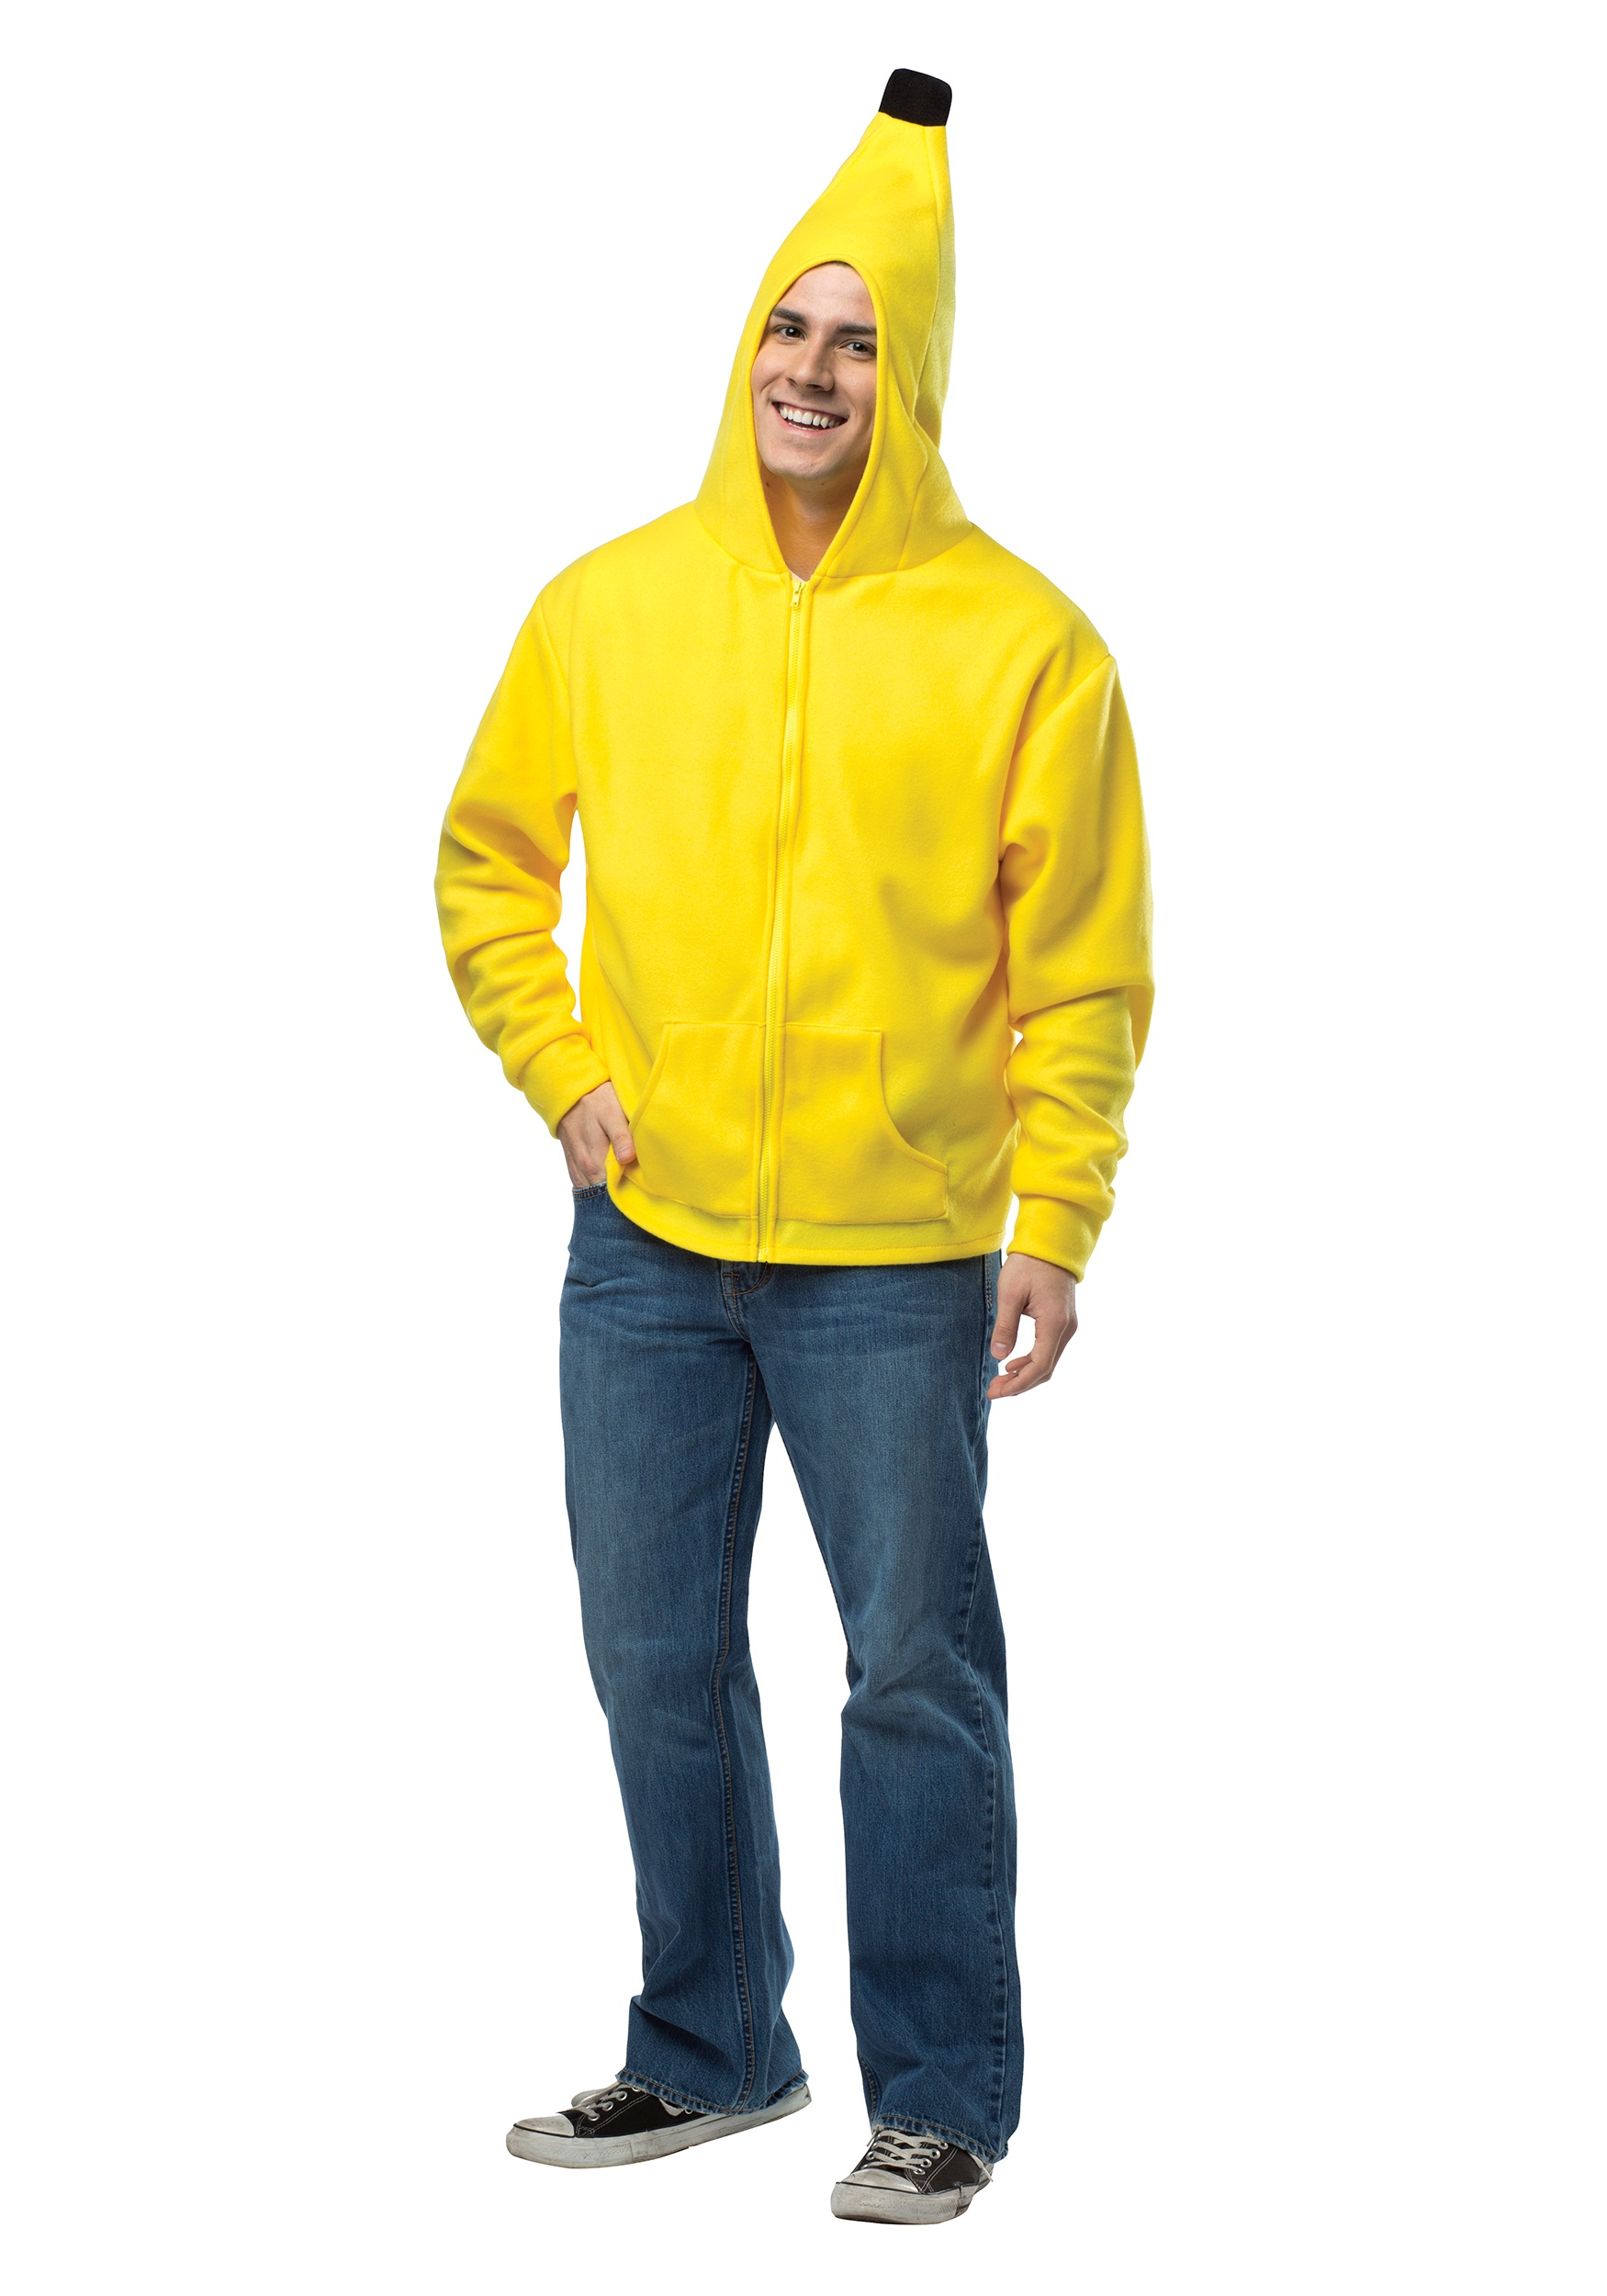 Back toAdult Costumes Banana Costumes Boy Costumes Food u0026 Drink Costumes Food Costumes Funny Costumes Girl Costumes Kids Costumes Menu0027s Costumes ...  sc 1 st  Halloween Costumes & Adult Banana Hoodie - Halloween Costumes